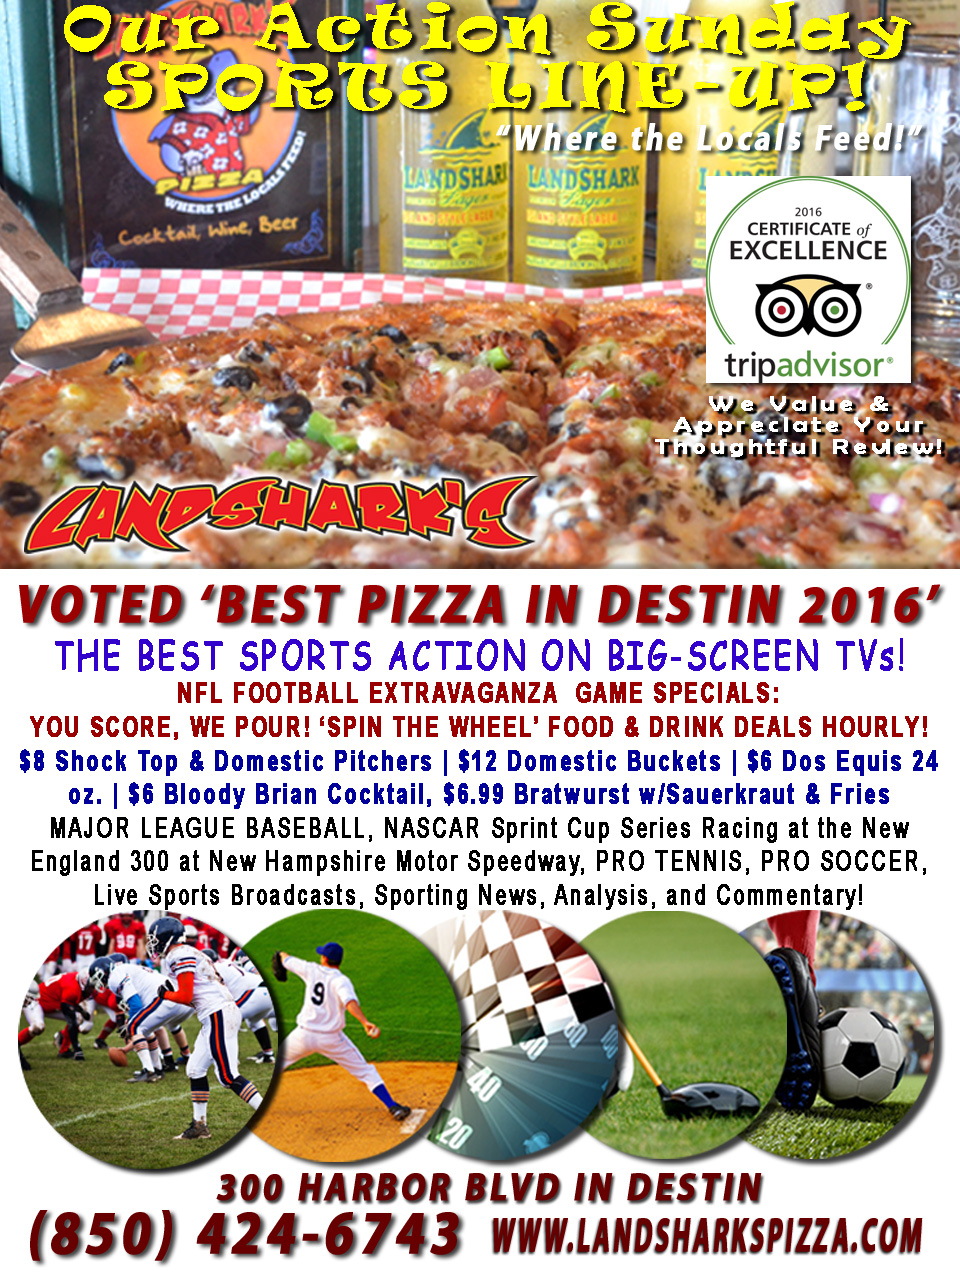 destin-nfl-football-at-landsharks-pizza-food-and-drink-specials-weekly-09-25-16